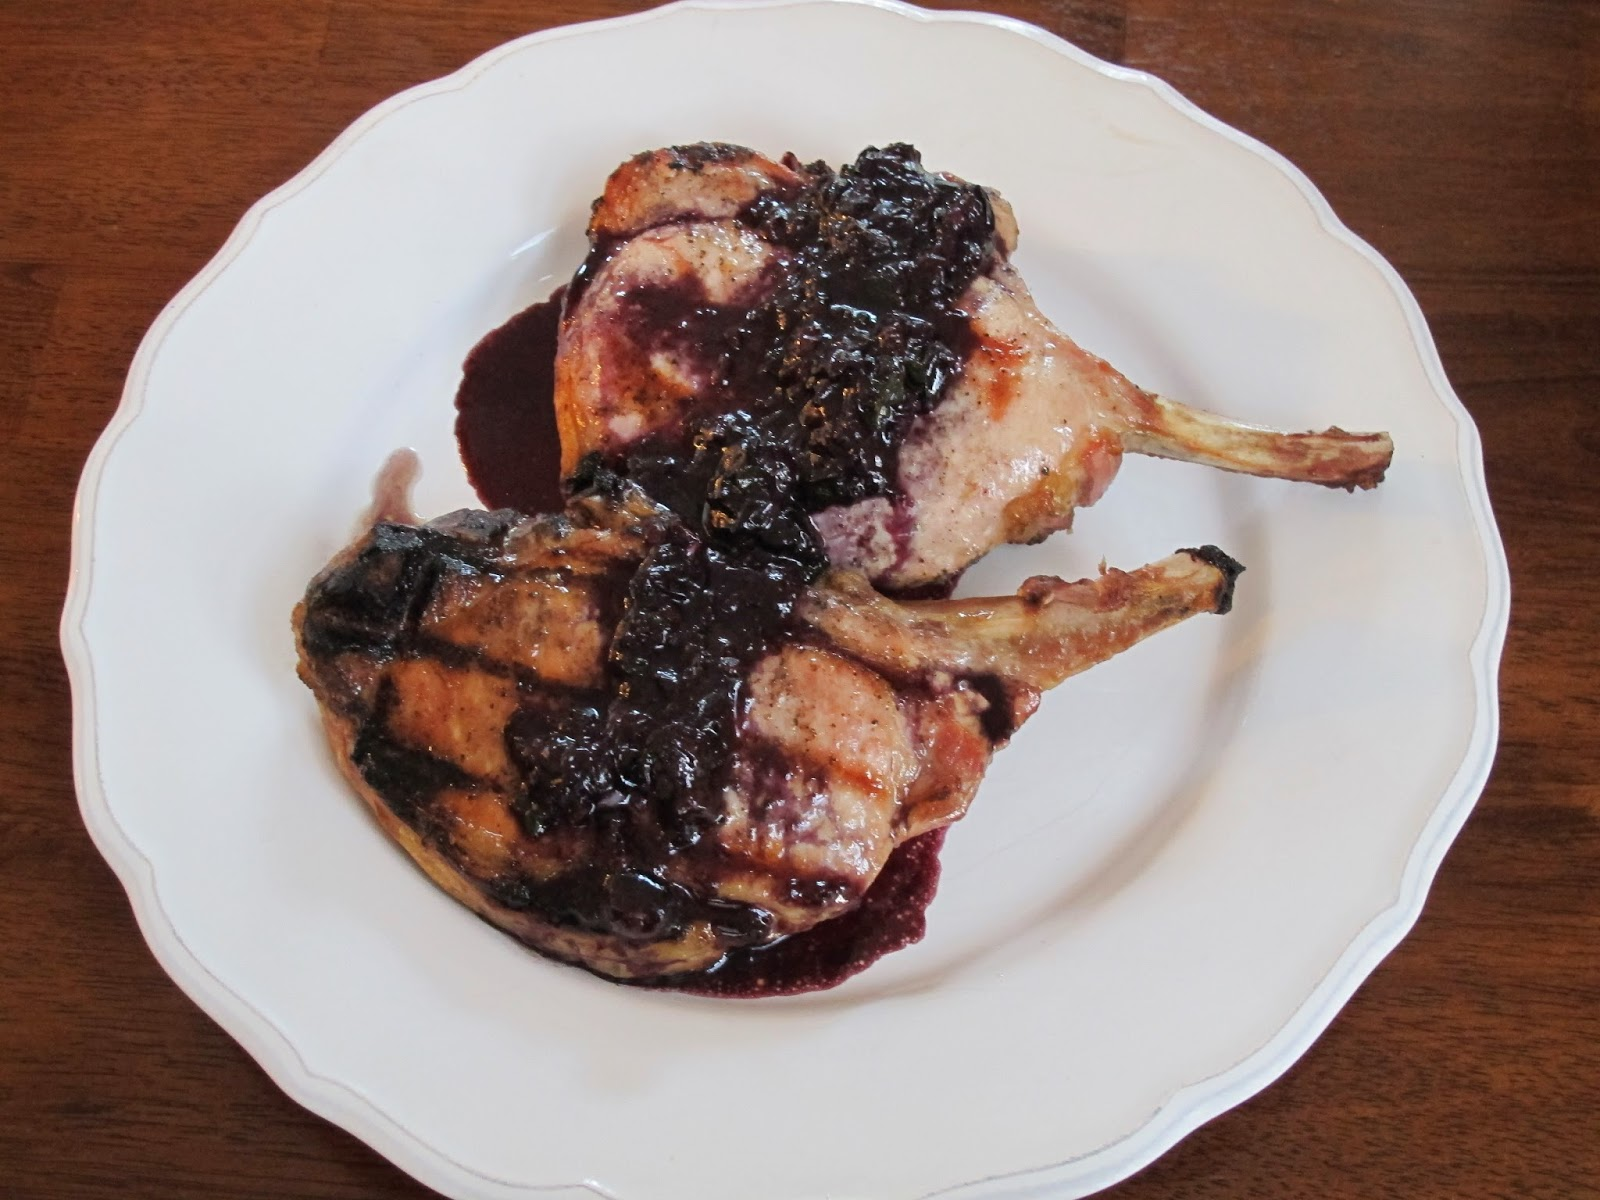 Grilled Pork Chops with Blueberry Balsamic Sauce